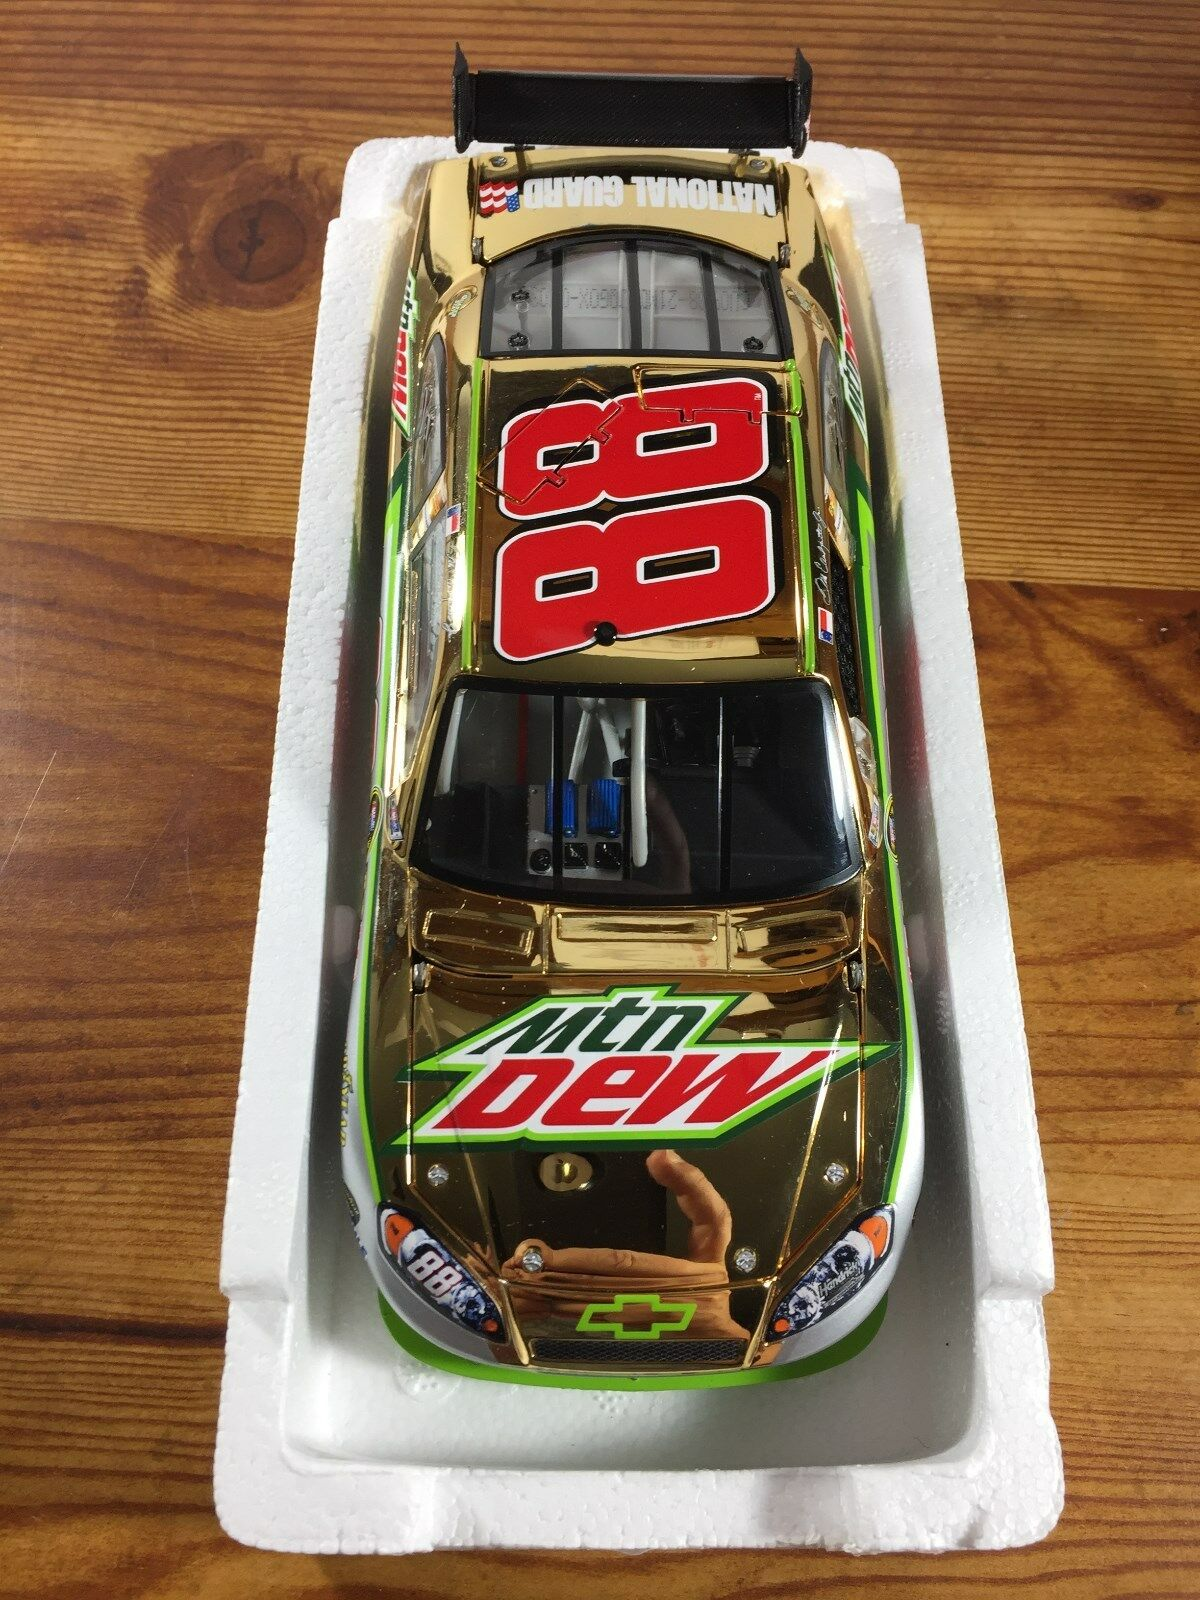 2009 Action MA DALE EARNHARDT  88 Mtn Dew COT oro  d 48 Diecast Nascar 1 24 NEW